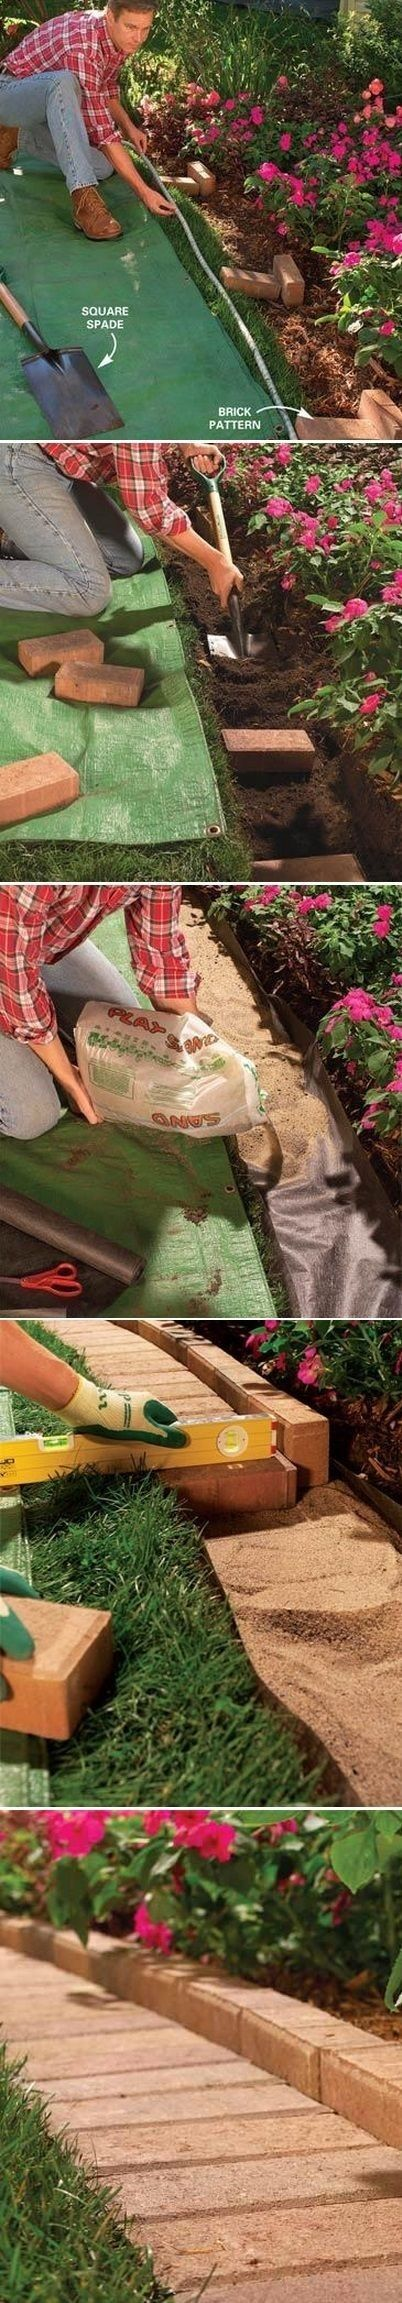 Excellent instructions... With pics. The Best Garden Bed Edging Tips